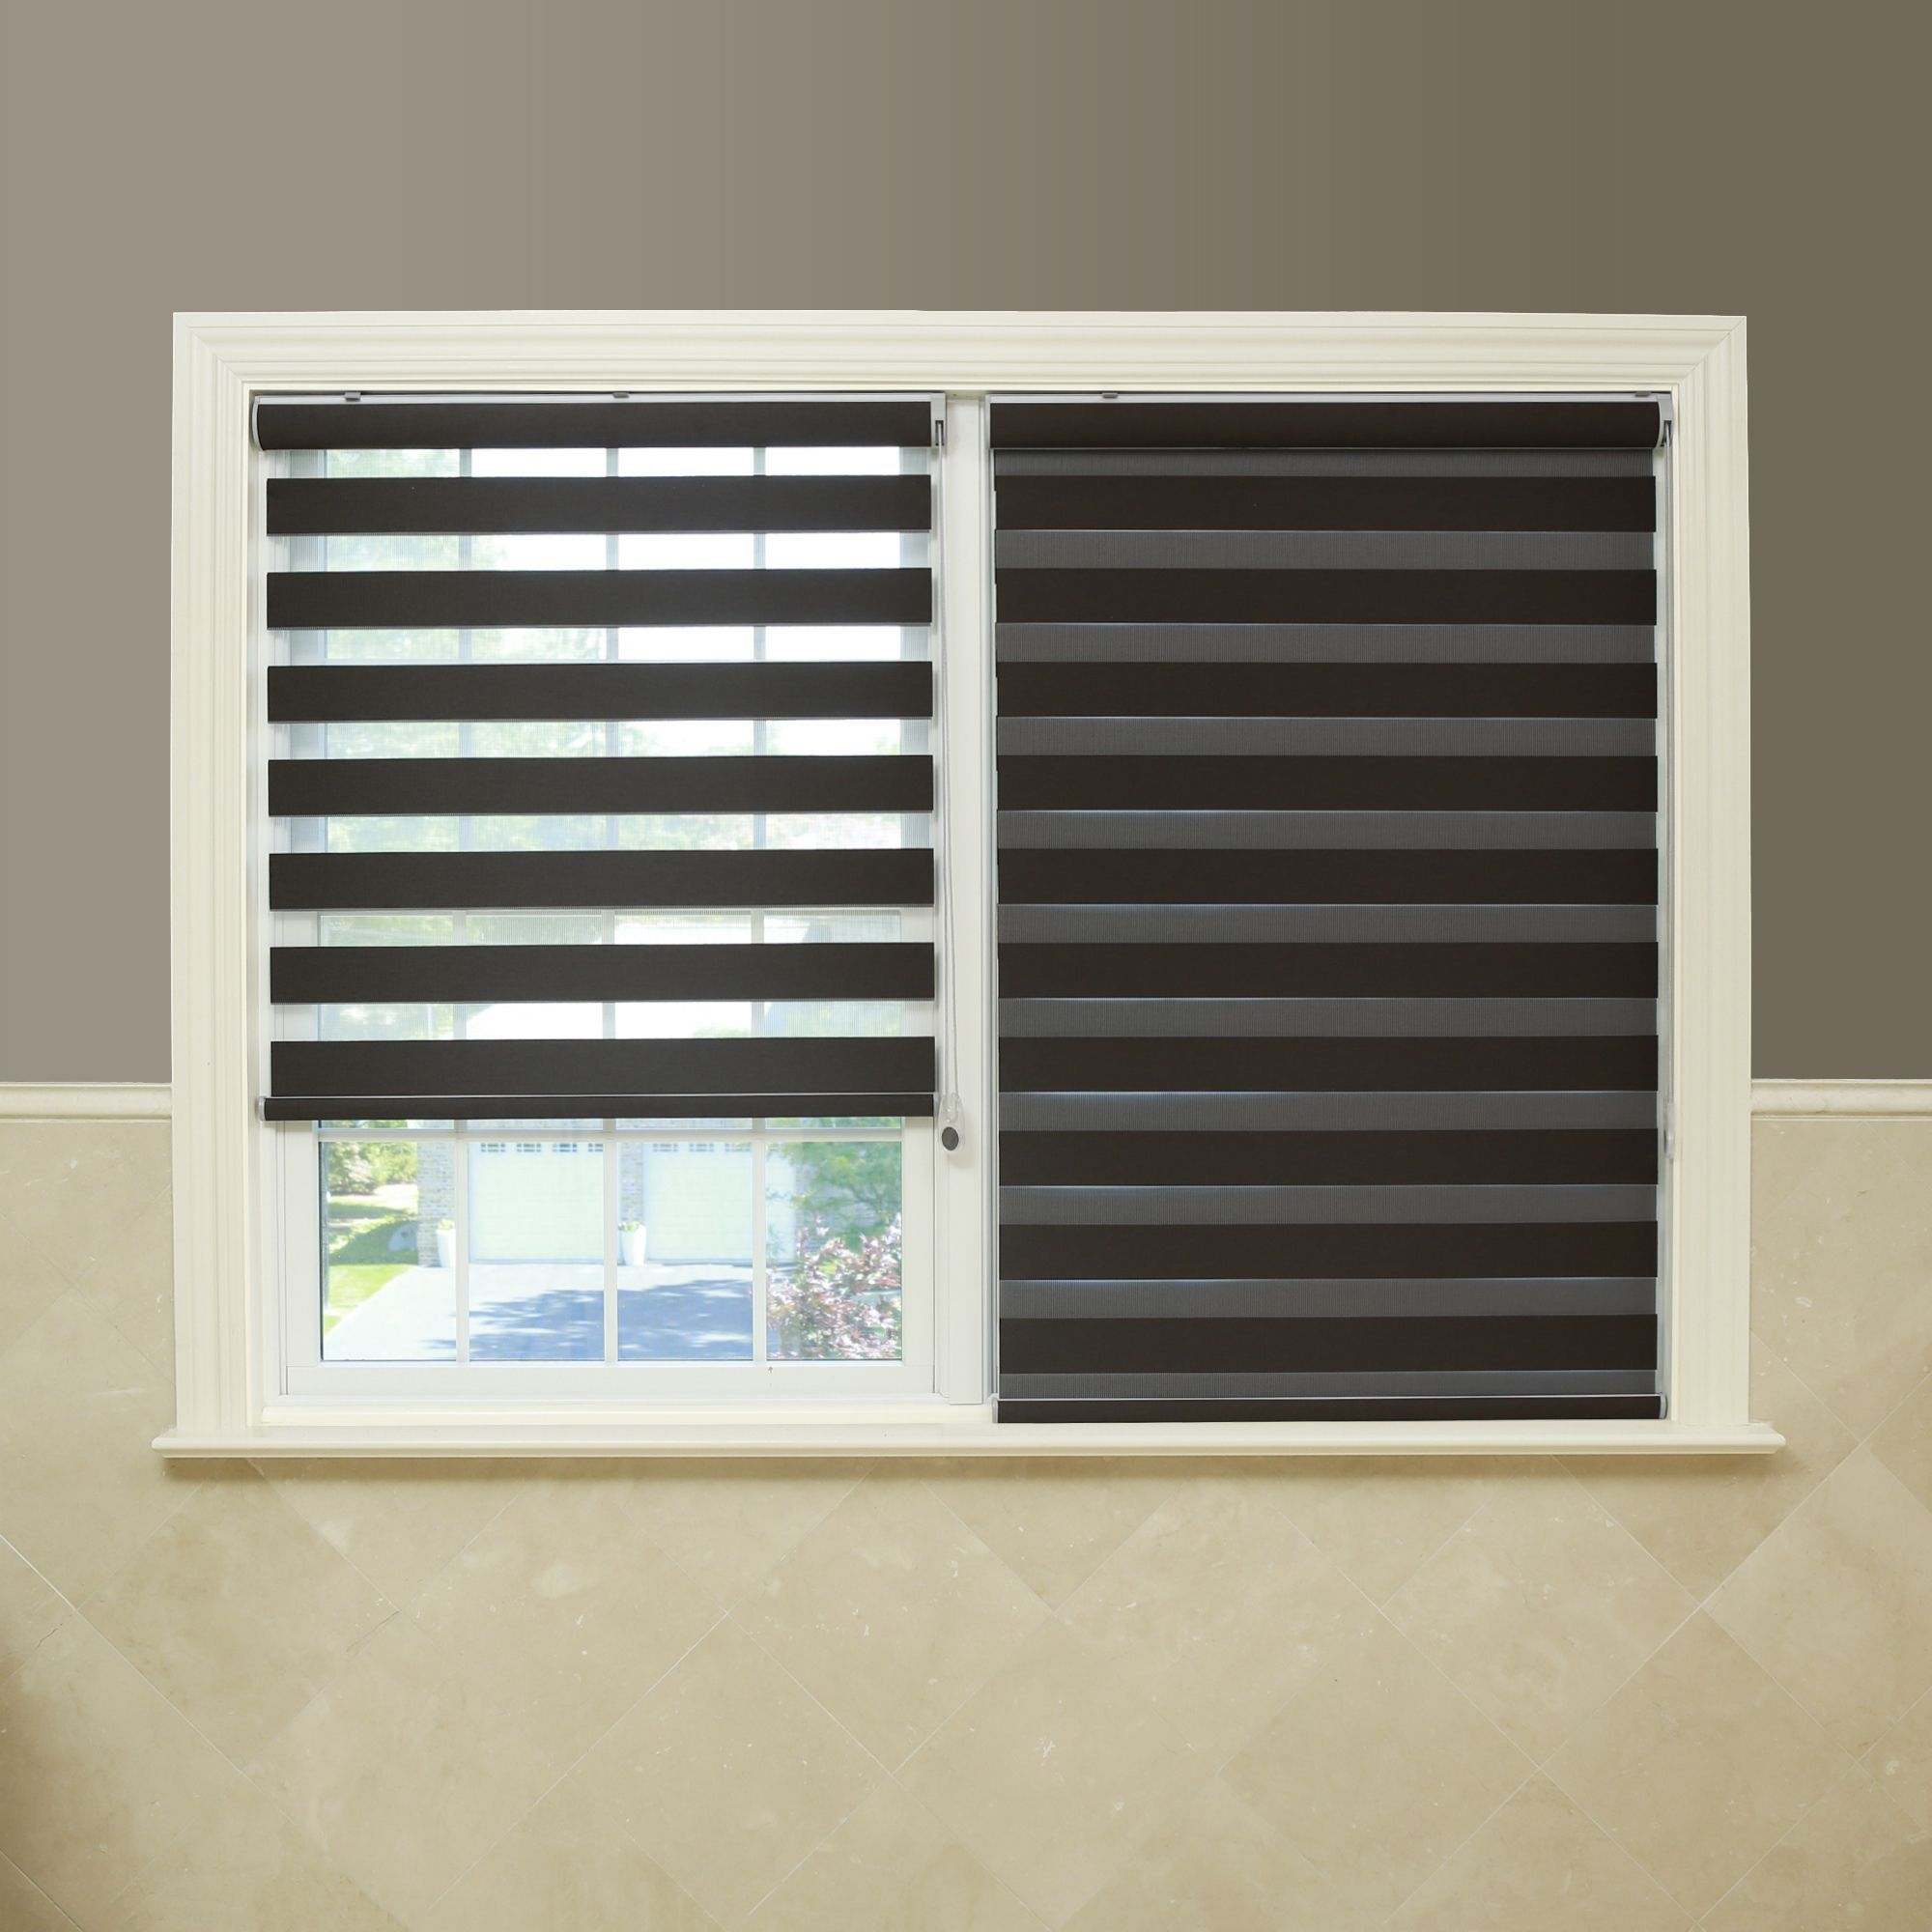 ideas image charter home modern for treatments windows blinds window shades of casement and